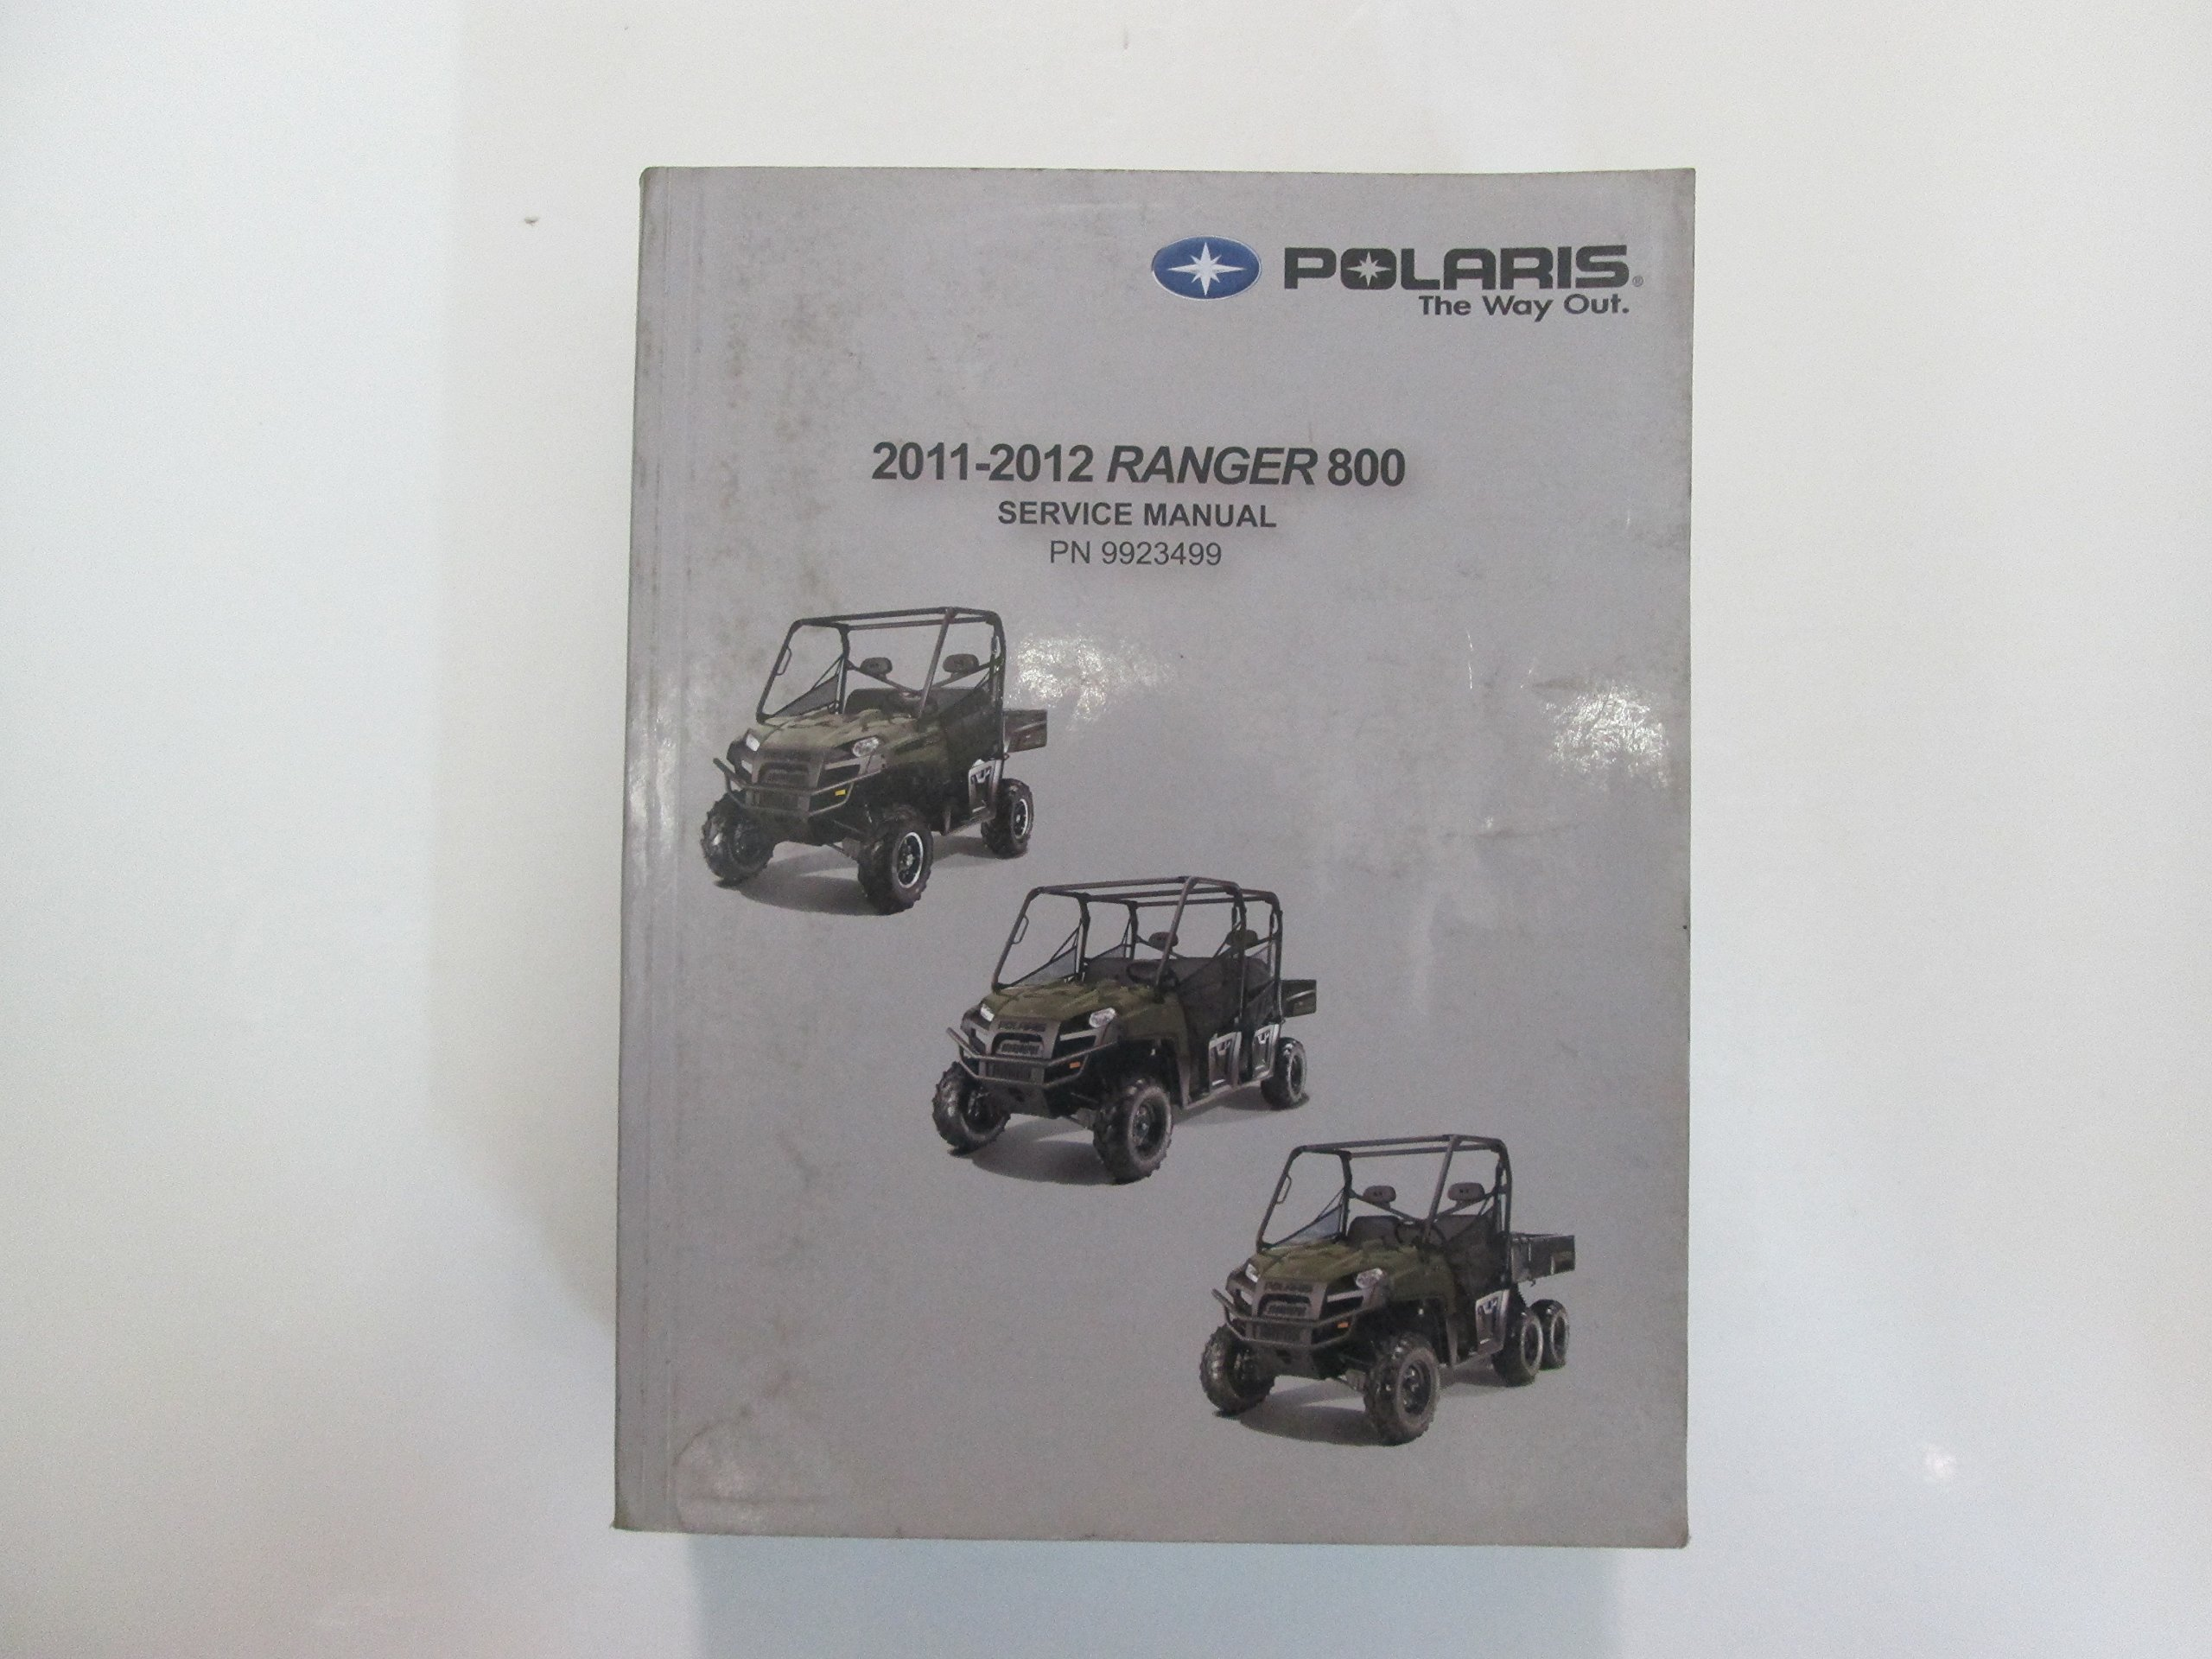 2011 2012 Polaris Ranger 800 Service Shop Manual STAINED WORN LOOSE PAGES  USED: Polaris: Amazon.com: Books